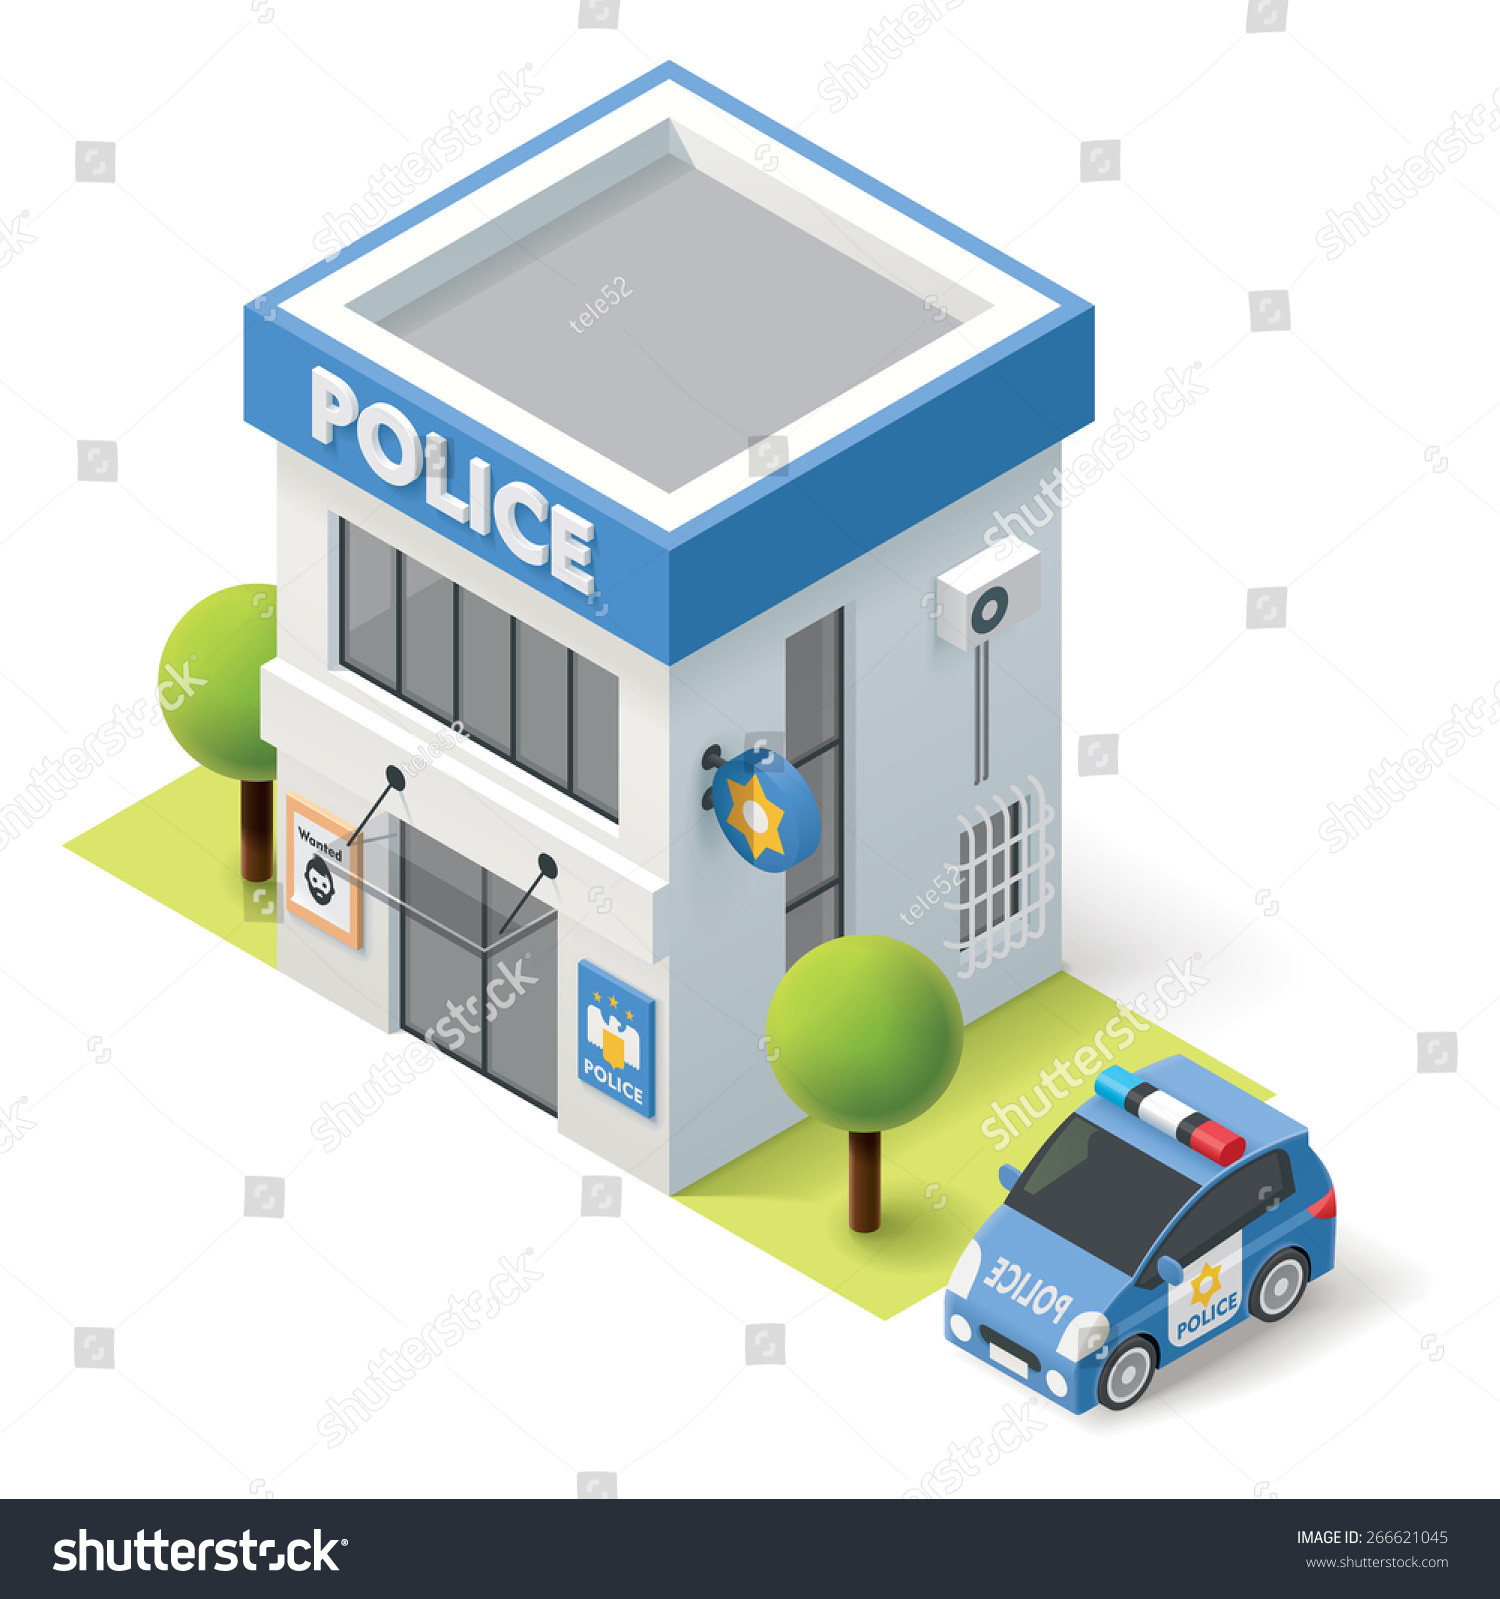 Police Station Building Clipart police station stock vectors & vector ...